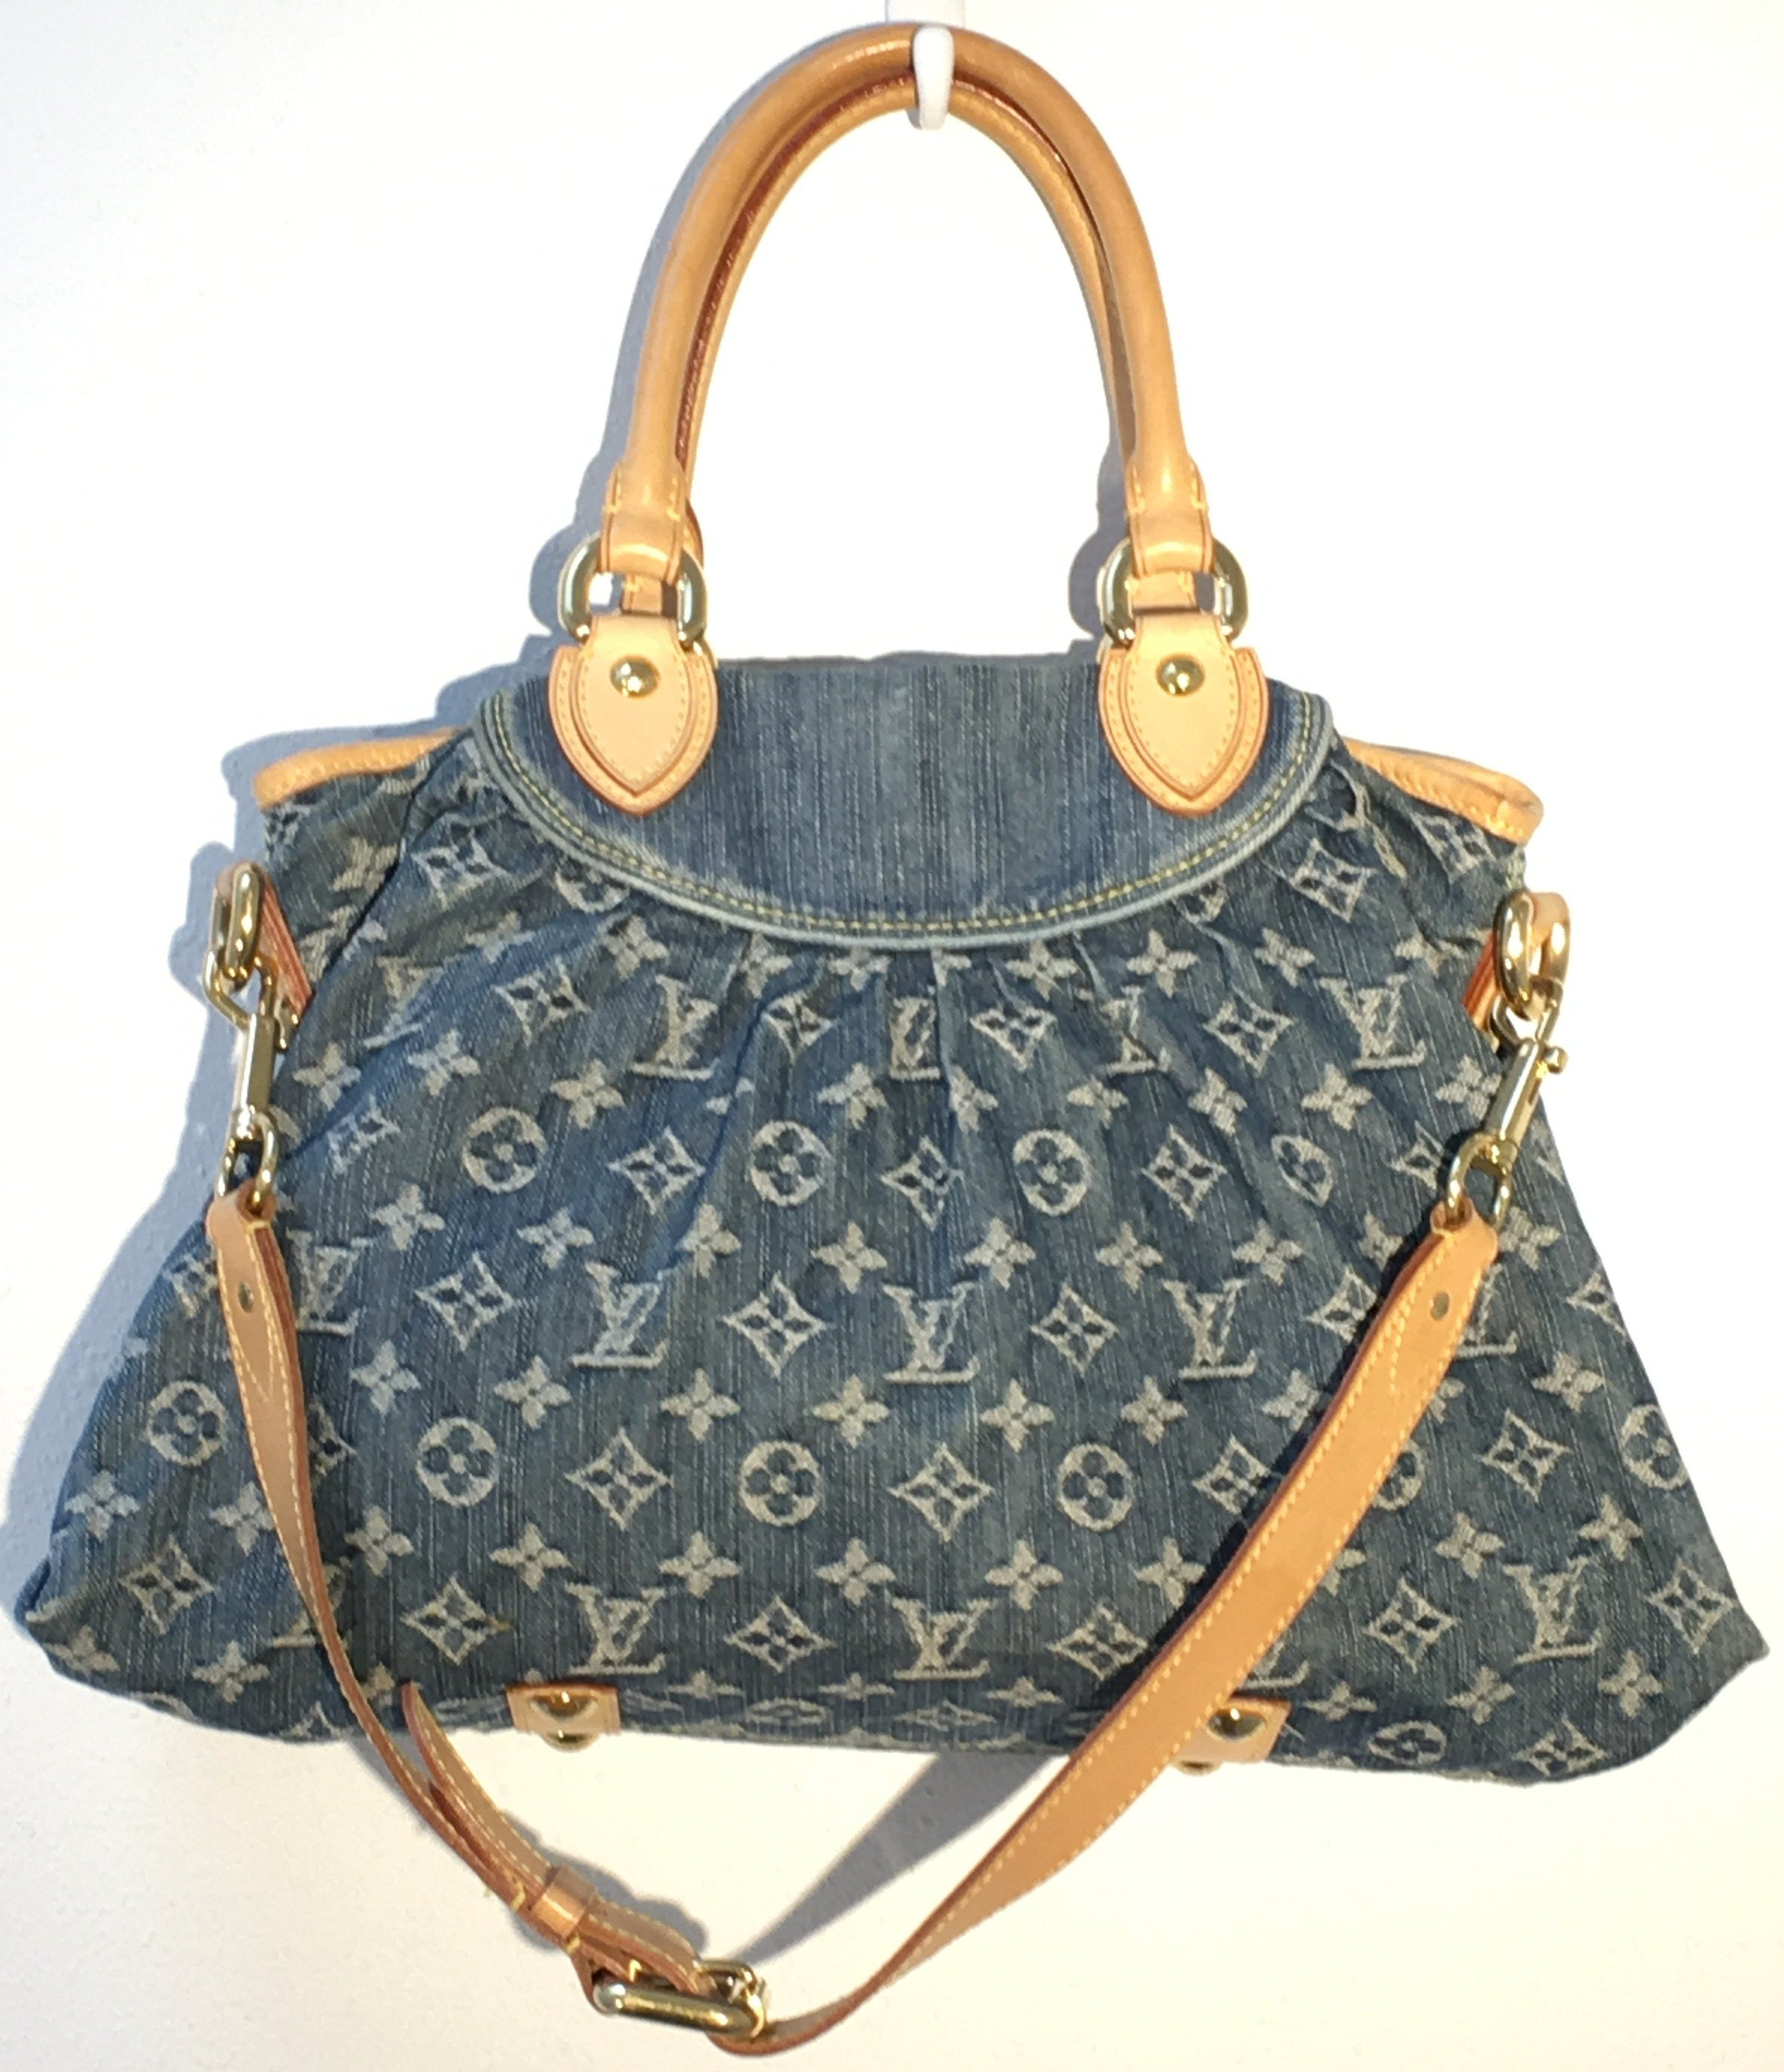 Vintage Louis Vuitton Neo Cabby Bag. Find this Pin and more on Products by Deleuse  Fine Jewelry   Couture. 10e940e34f9f8